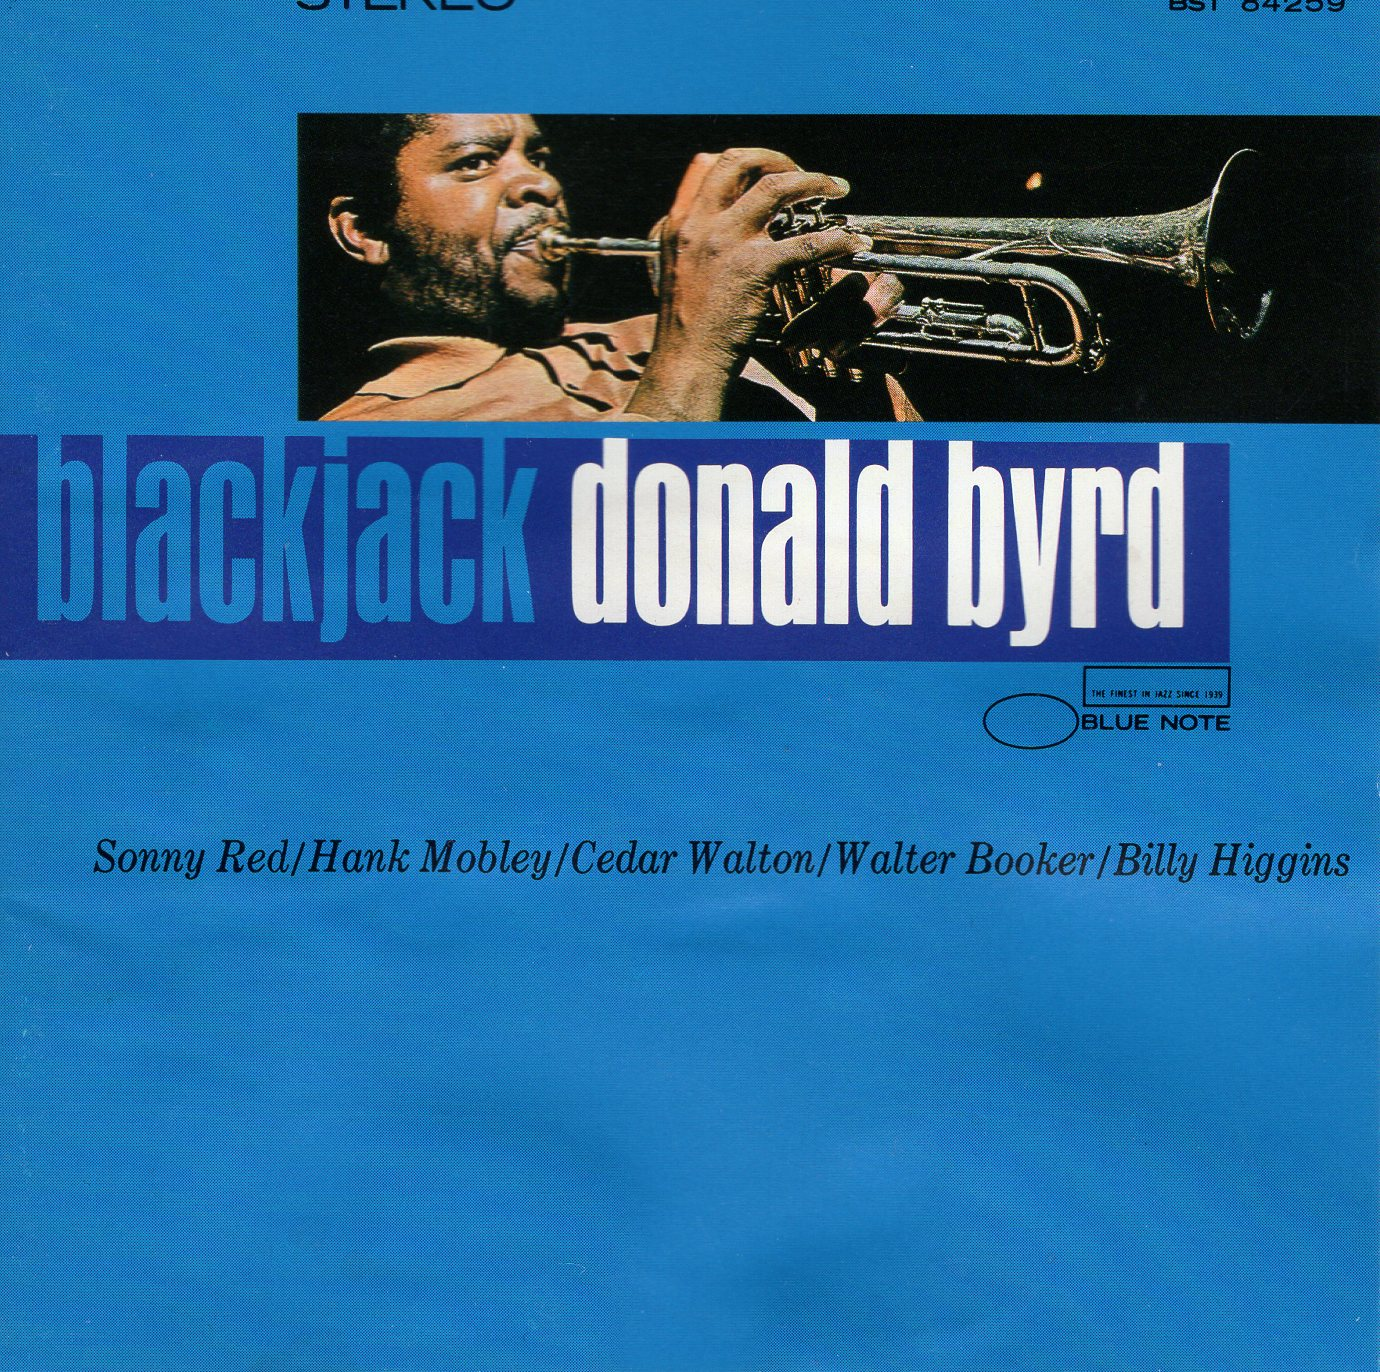 """Blackjack"" Donald Byrd"